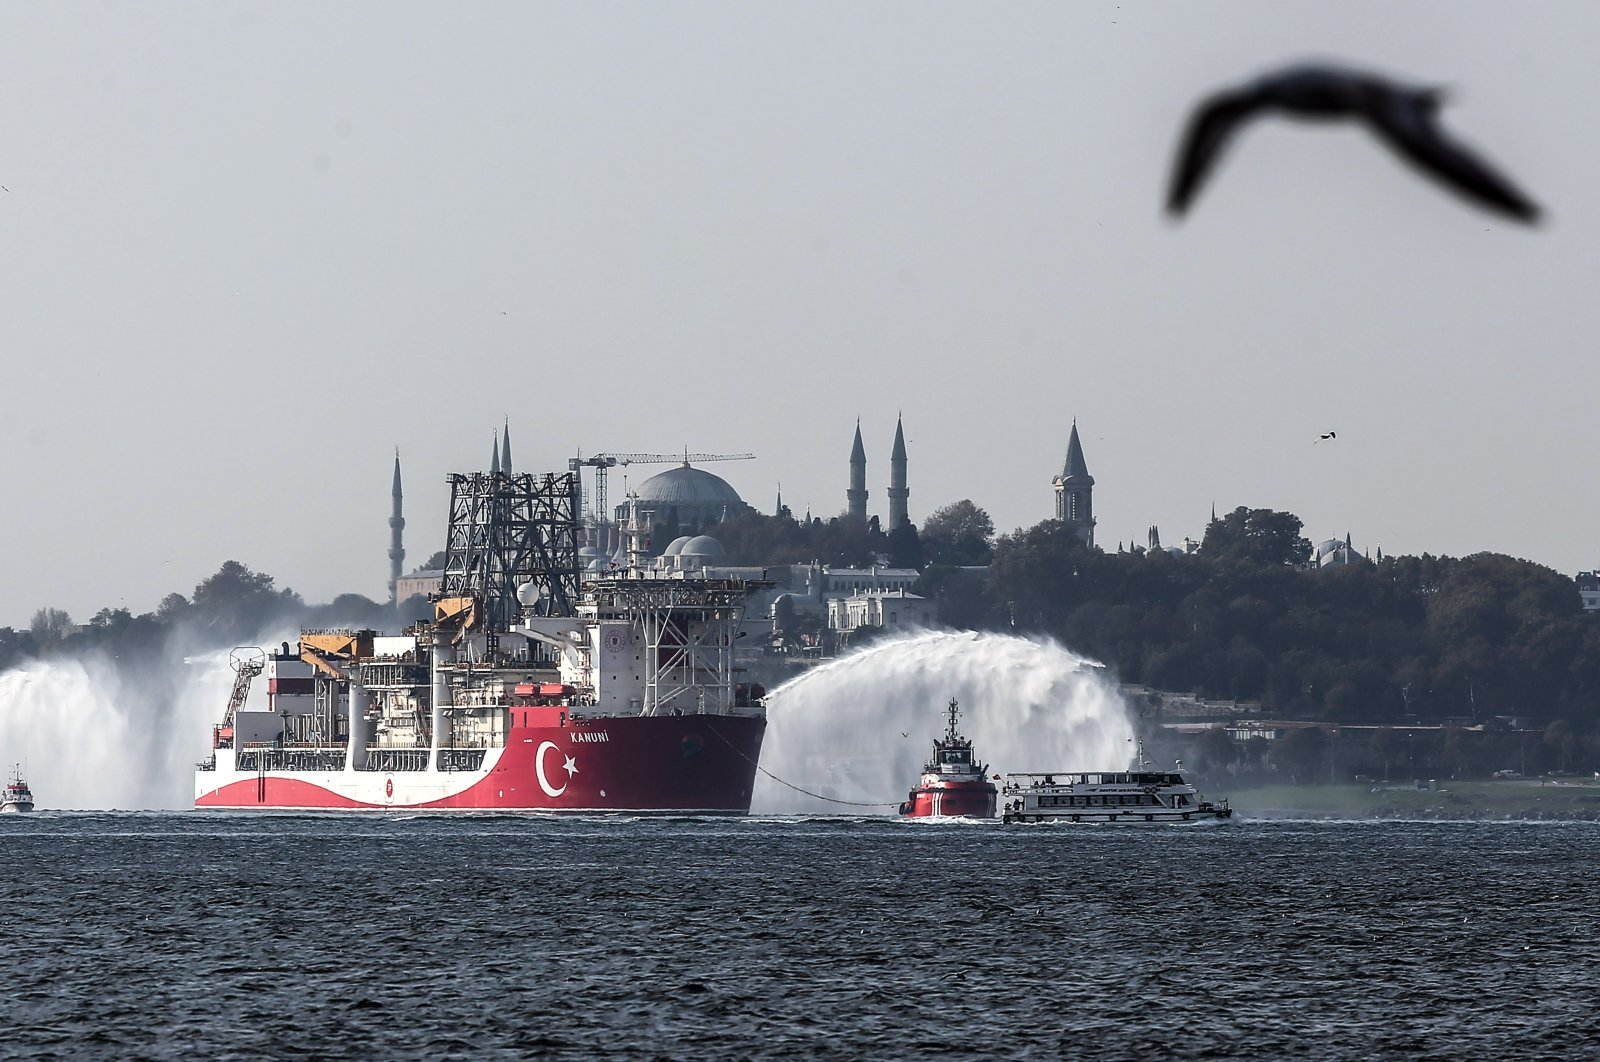 Turkey's third drillship Kanuni is seen off Istanbul as it departs for the Black Sea to carry out drilling activities, Nov. 13, 2020. (AA Photo)